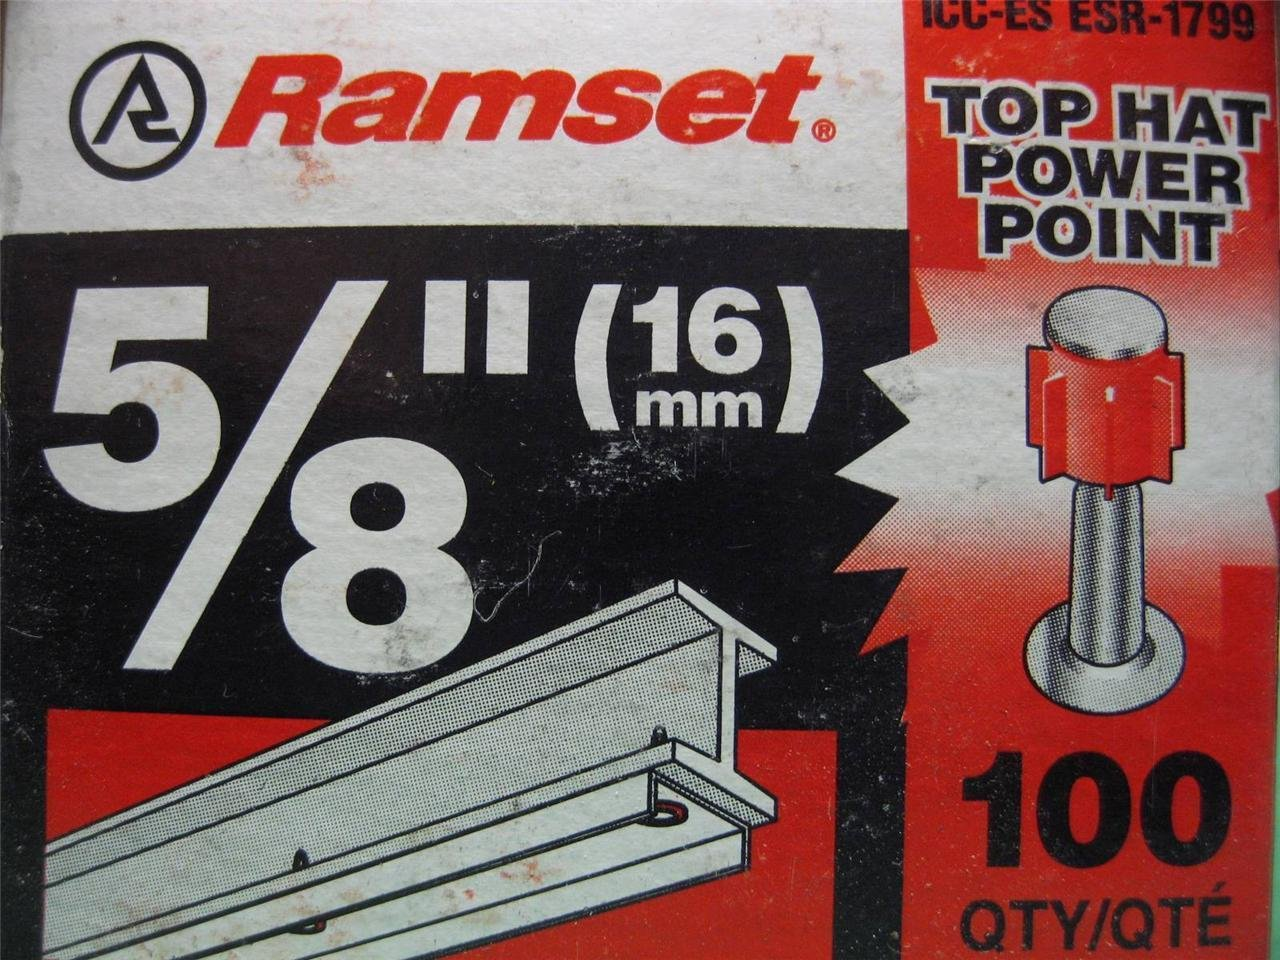 ITW Ramset Red Head SP58TH 5/8 top hat power point